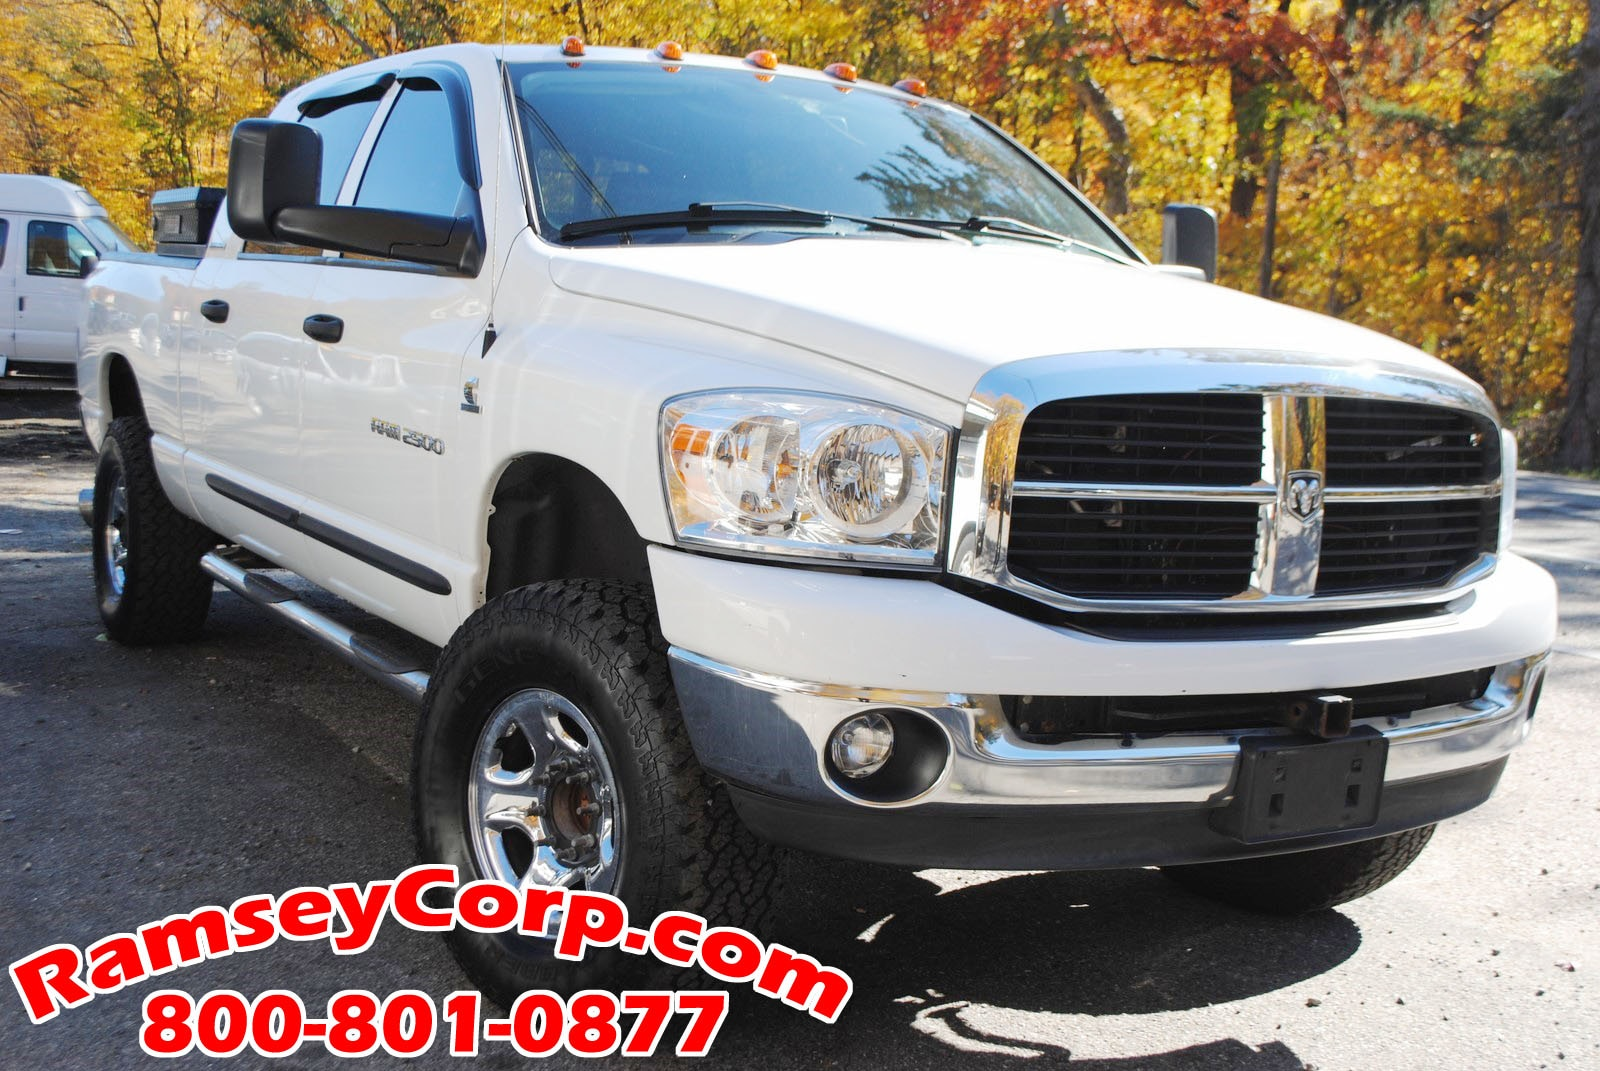 used 2006 dodge ram 2500 for sale west milford nj. Black Bedroom Furniture Sets. Home Design Ideas